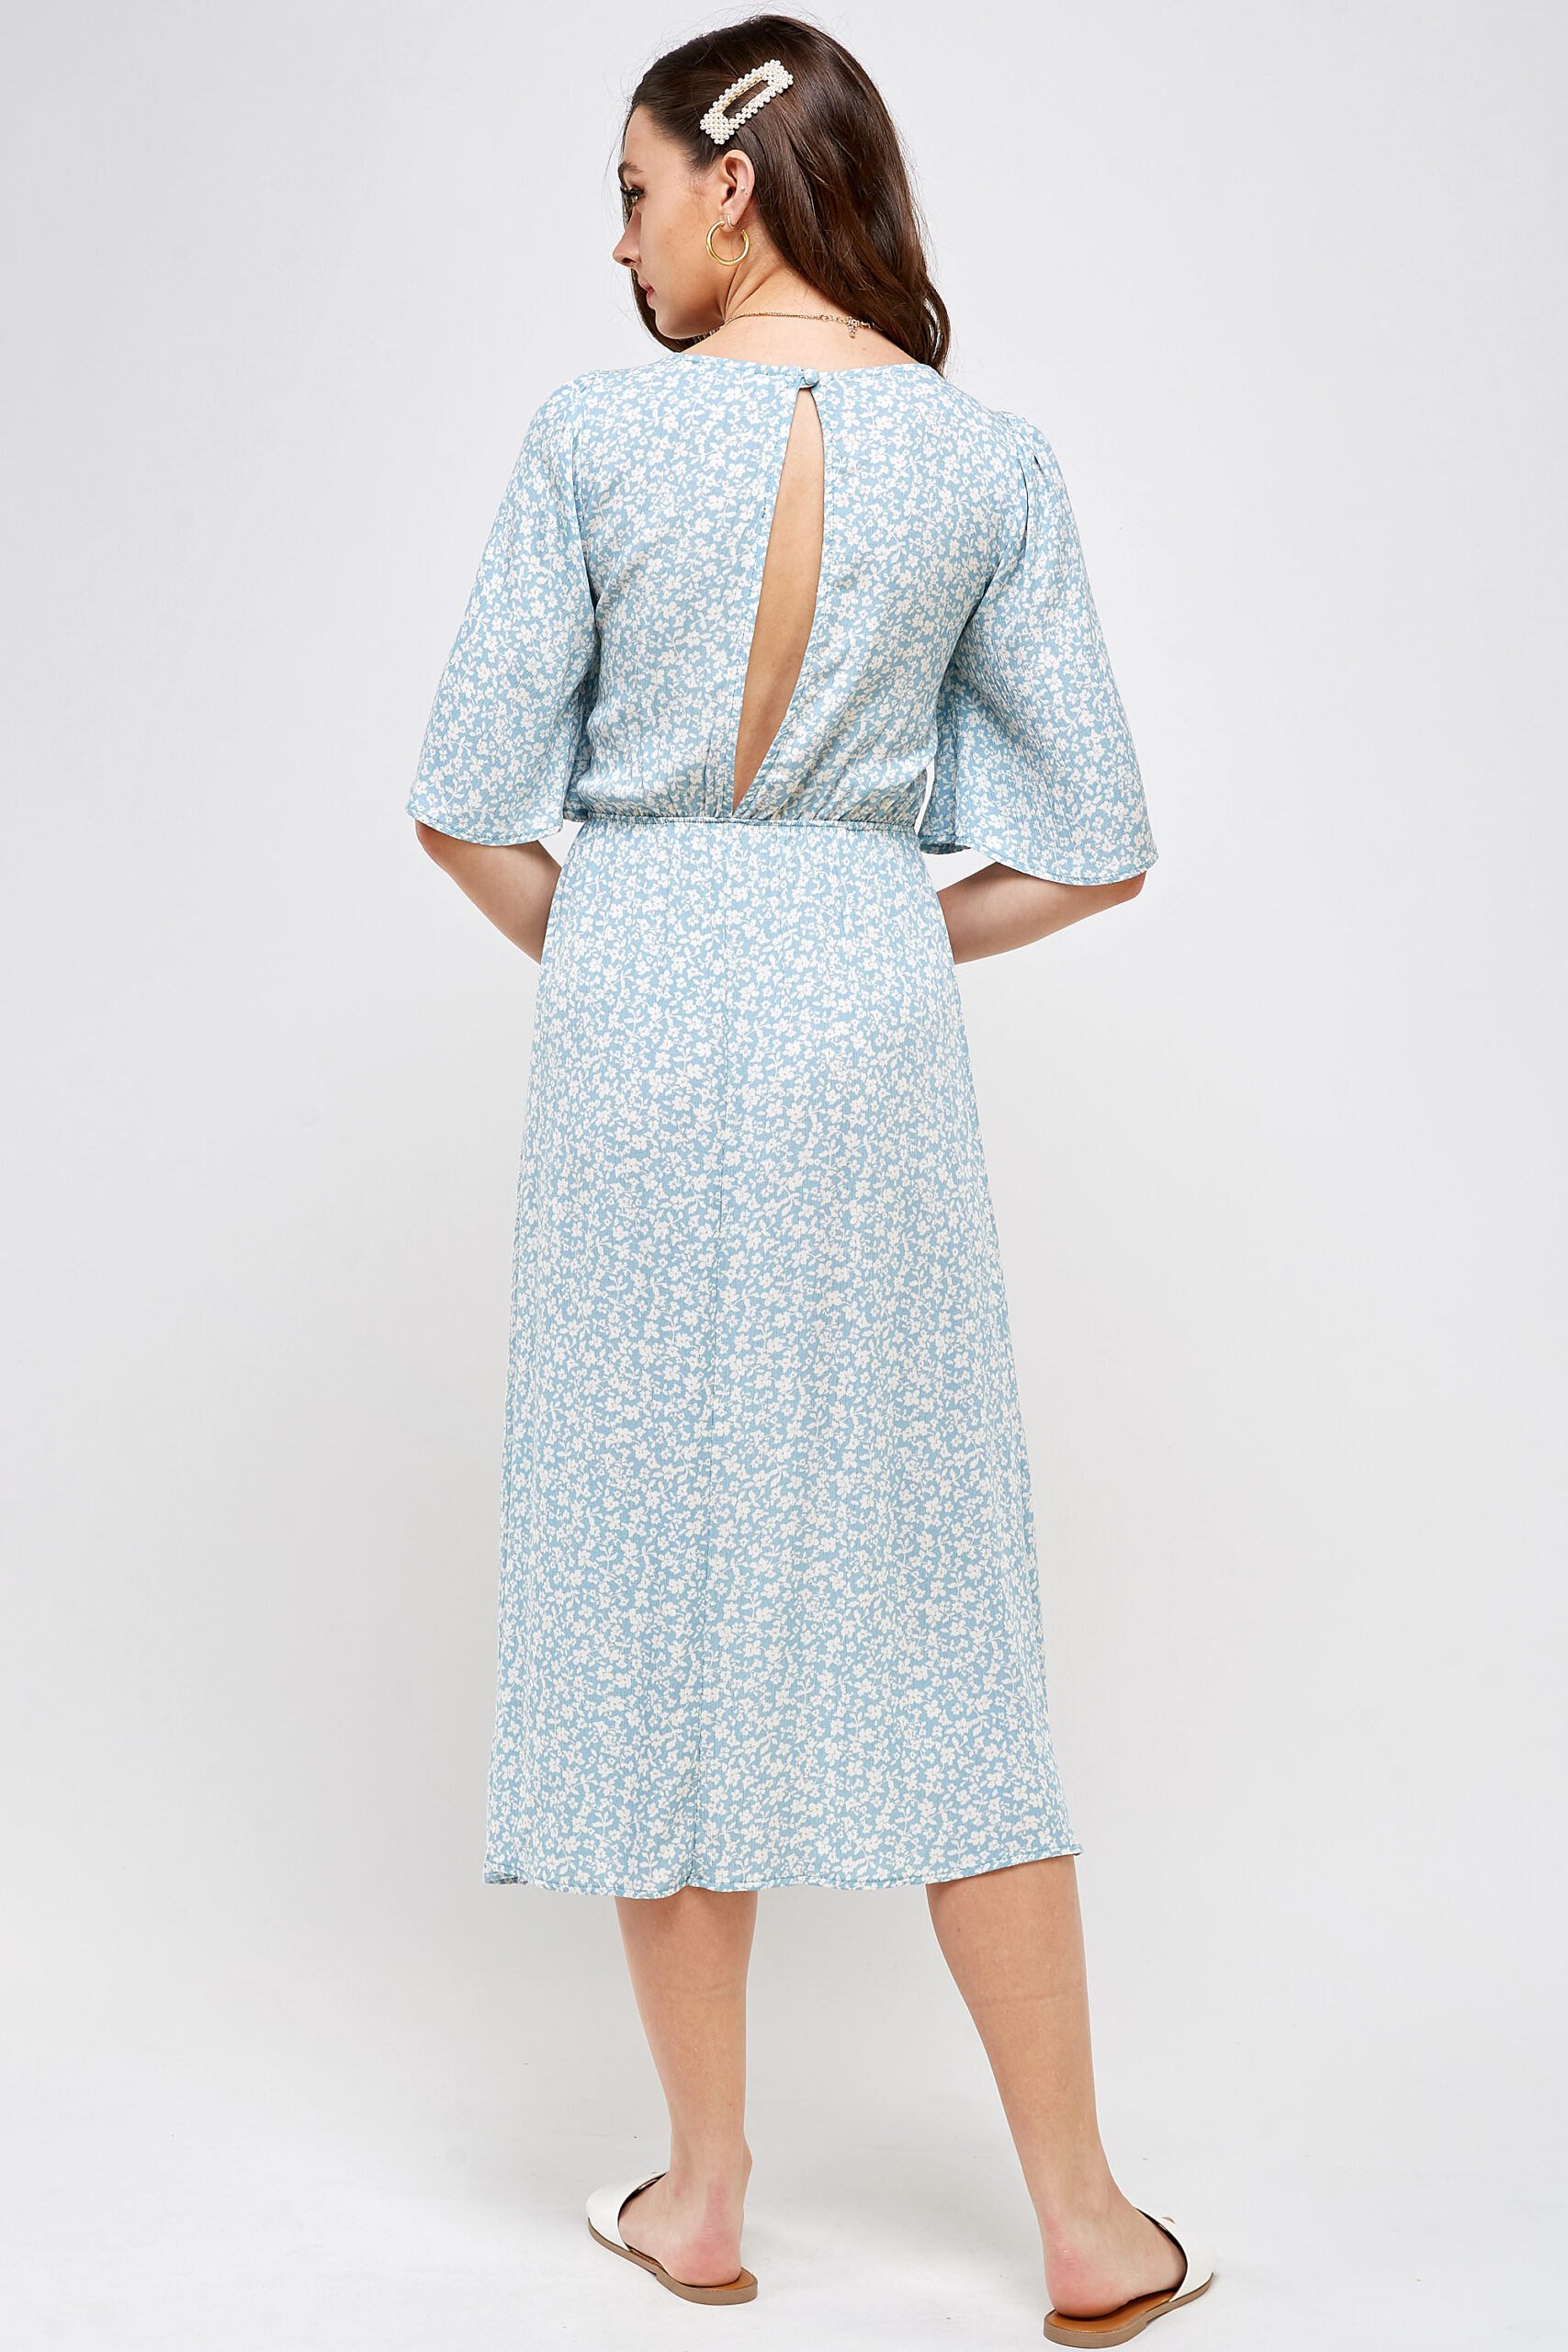 100% Rayon Tie Front Detail With Key Hole Elastic Waistband Open Back With Button Closure Back View